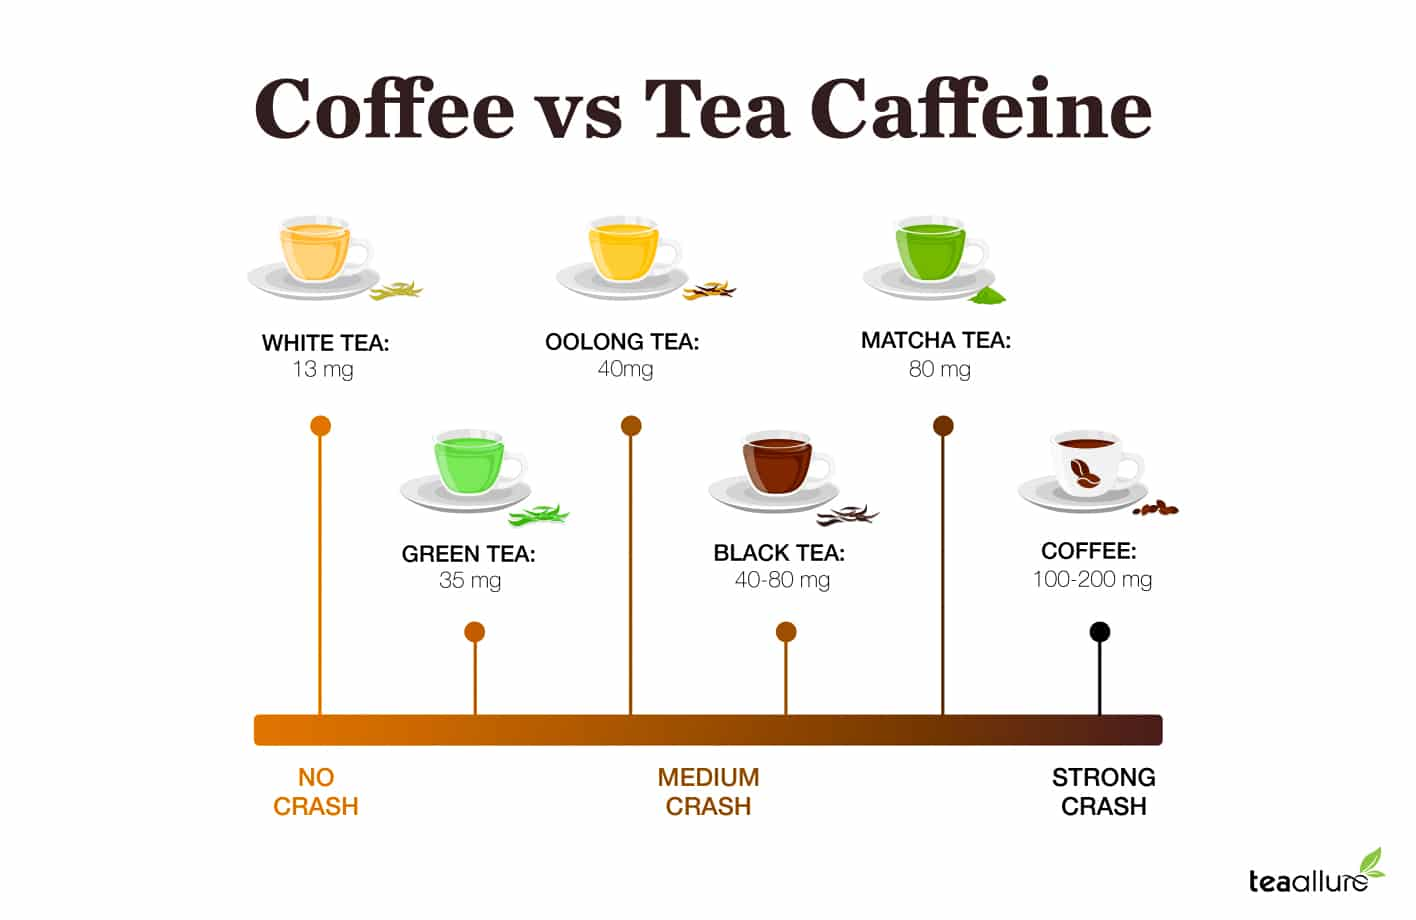 Caffeine level in coffee vs. tea